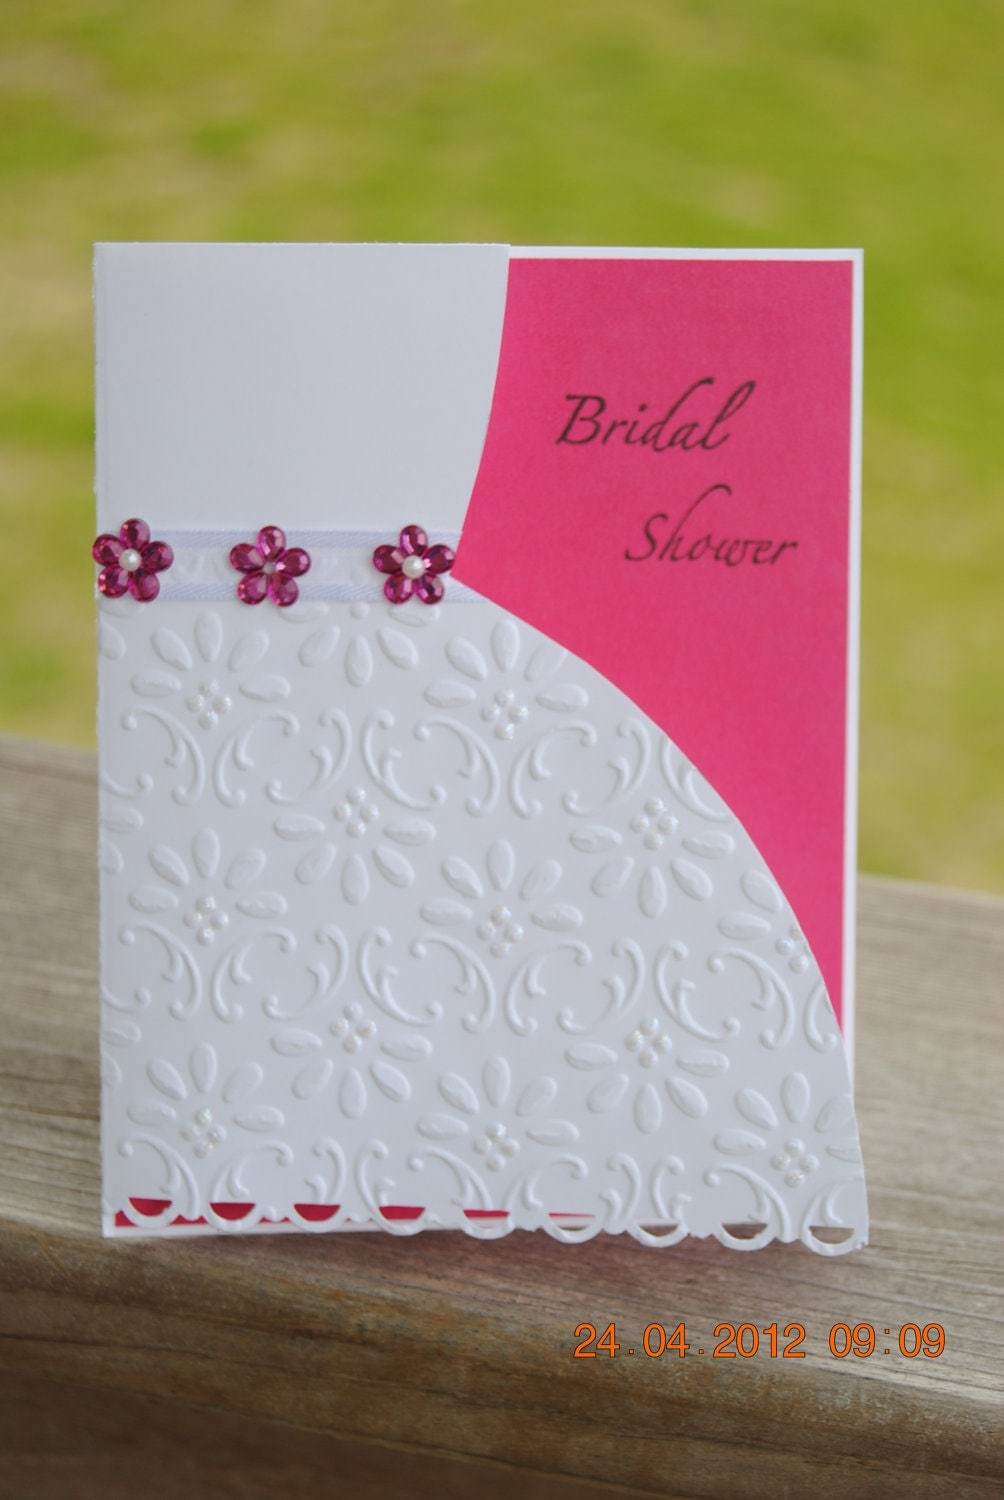 Wedding Shower Gift Card Verses : Handcrafted Embossed Bridal Shower Card by PaperBlossomsbyAmy